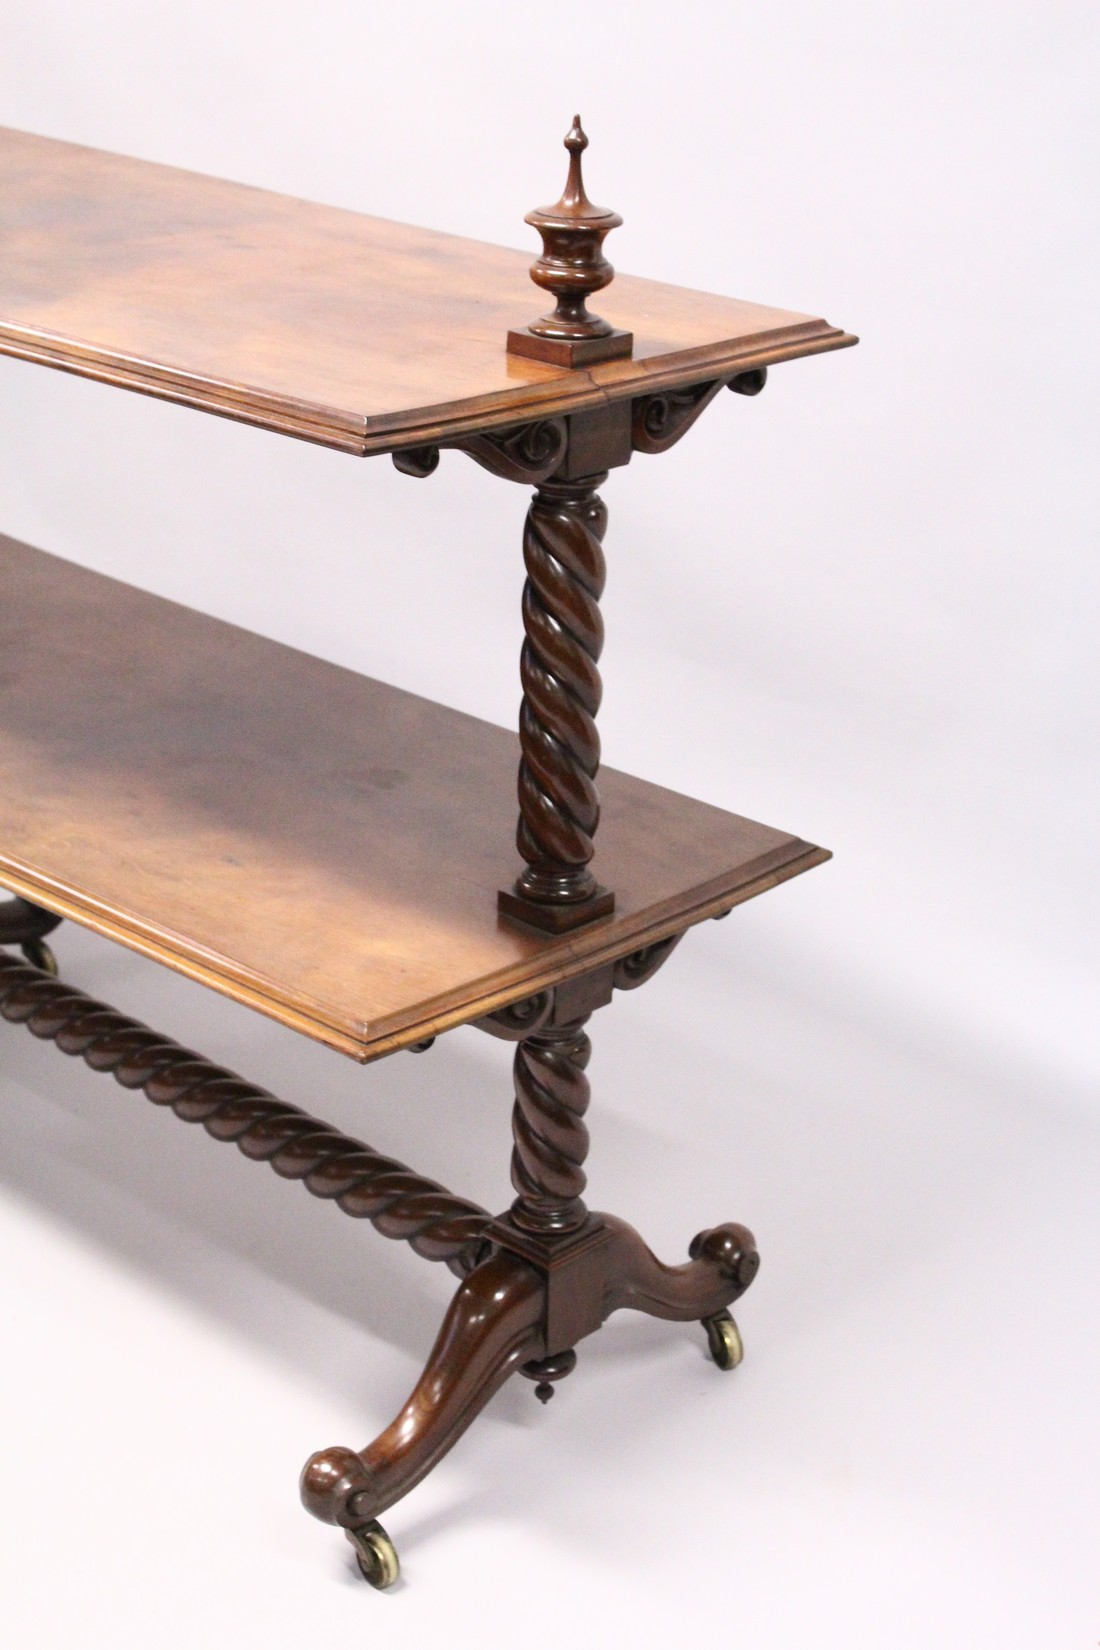 A GOOD VICTORIAN MAHOGANY TWO TIER DUMB WAITER with barley twist support on curving legs with - Image 2 of 3